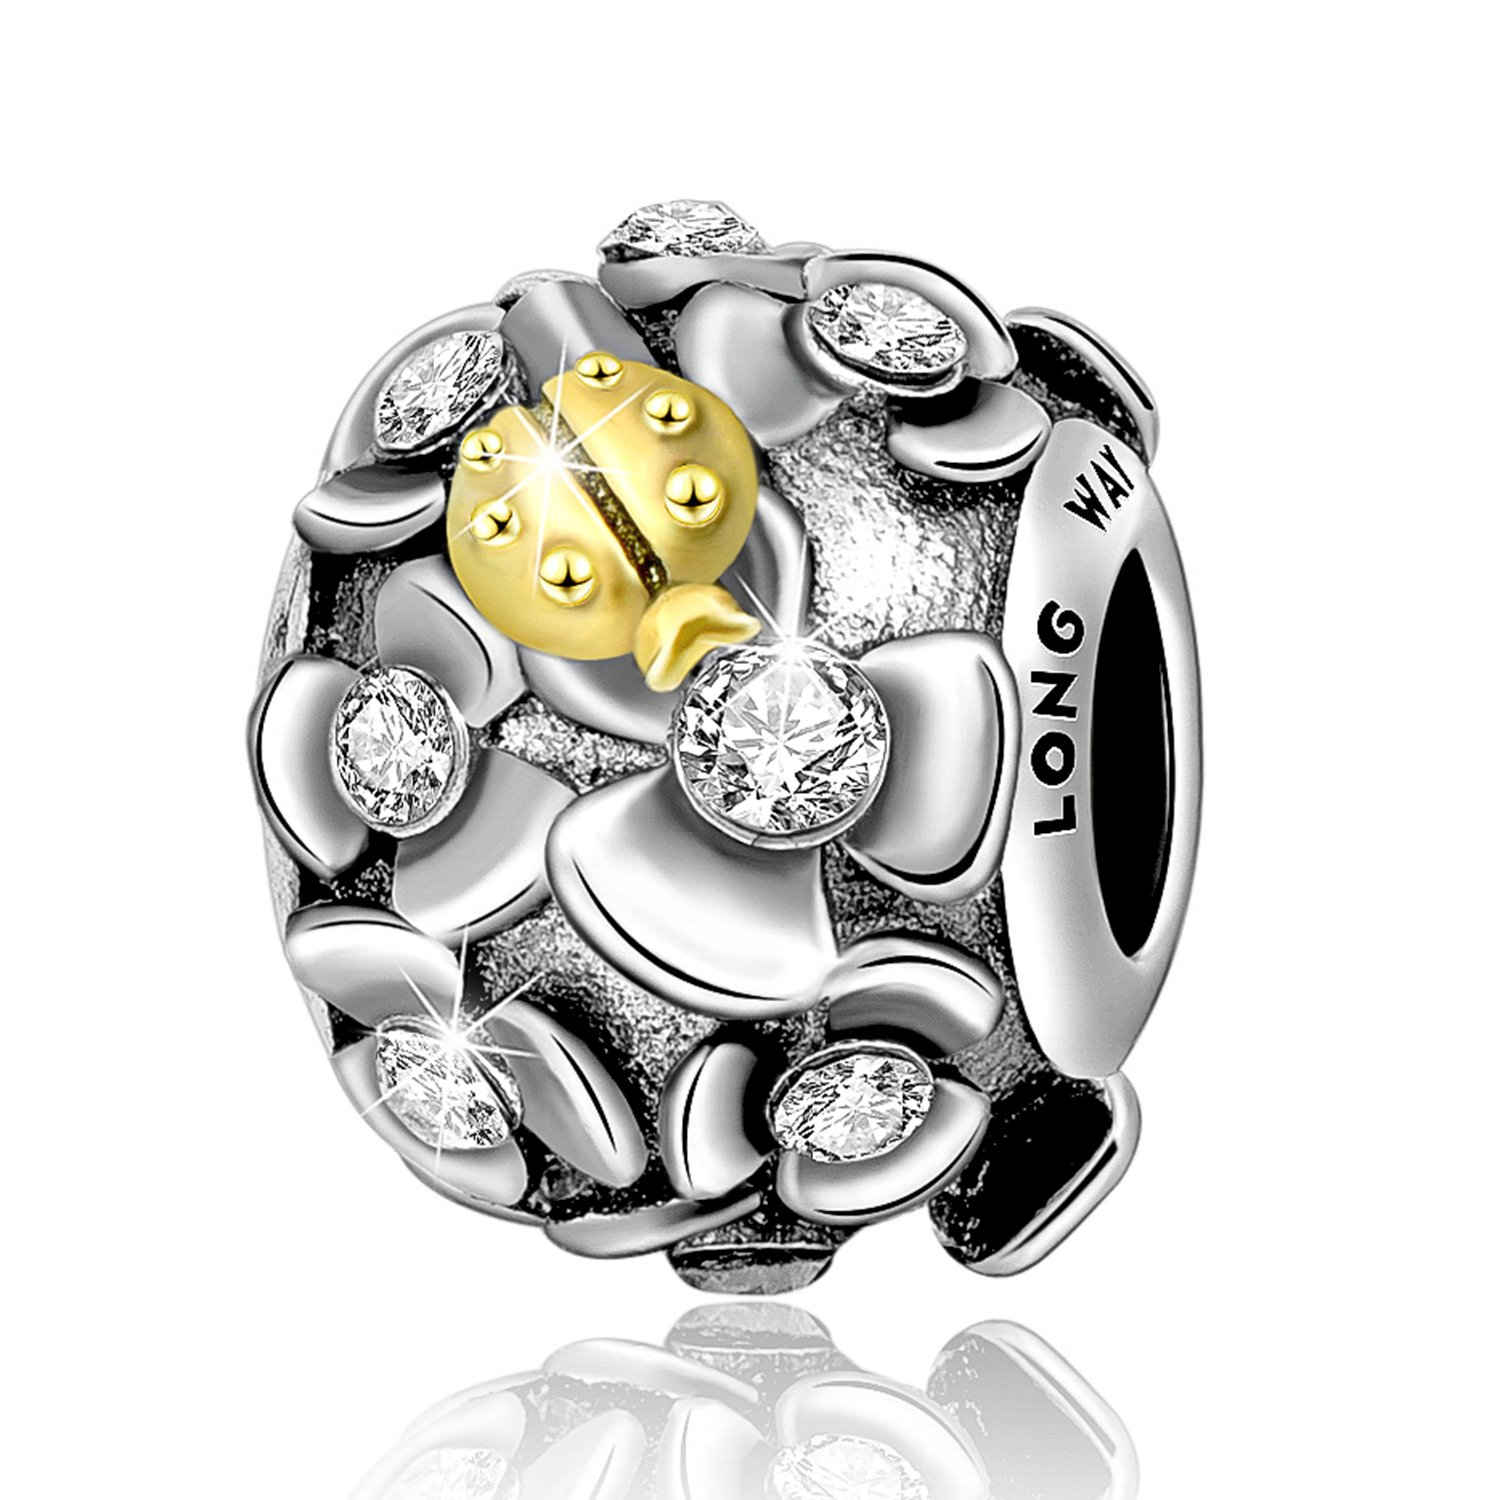 Long Way 925 Sterling Silver Crystal Bracelet Charm with Ladybug Flowers for Women